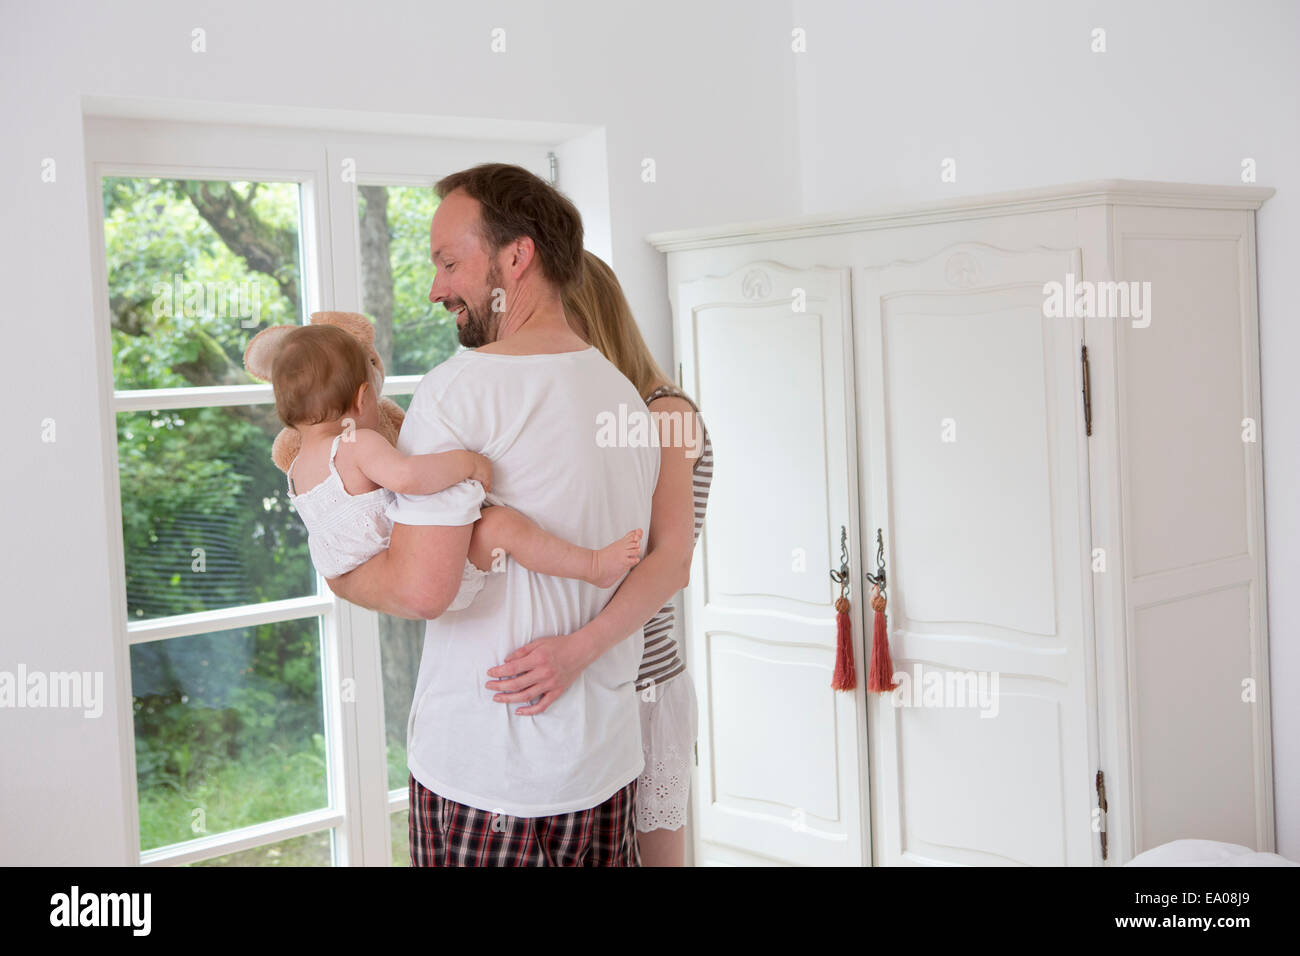 Father holding baby daughter, woman with arm around man - Stock Image